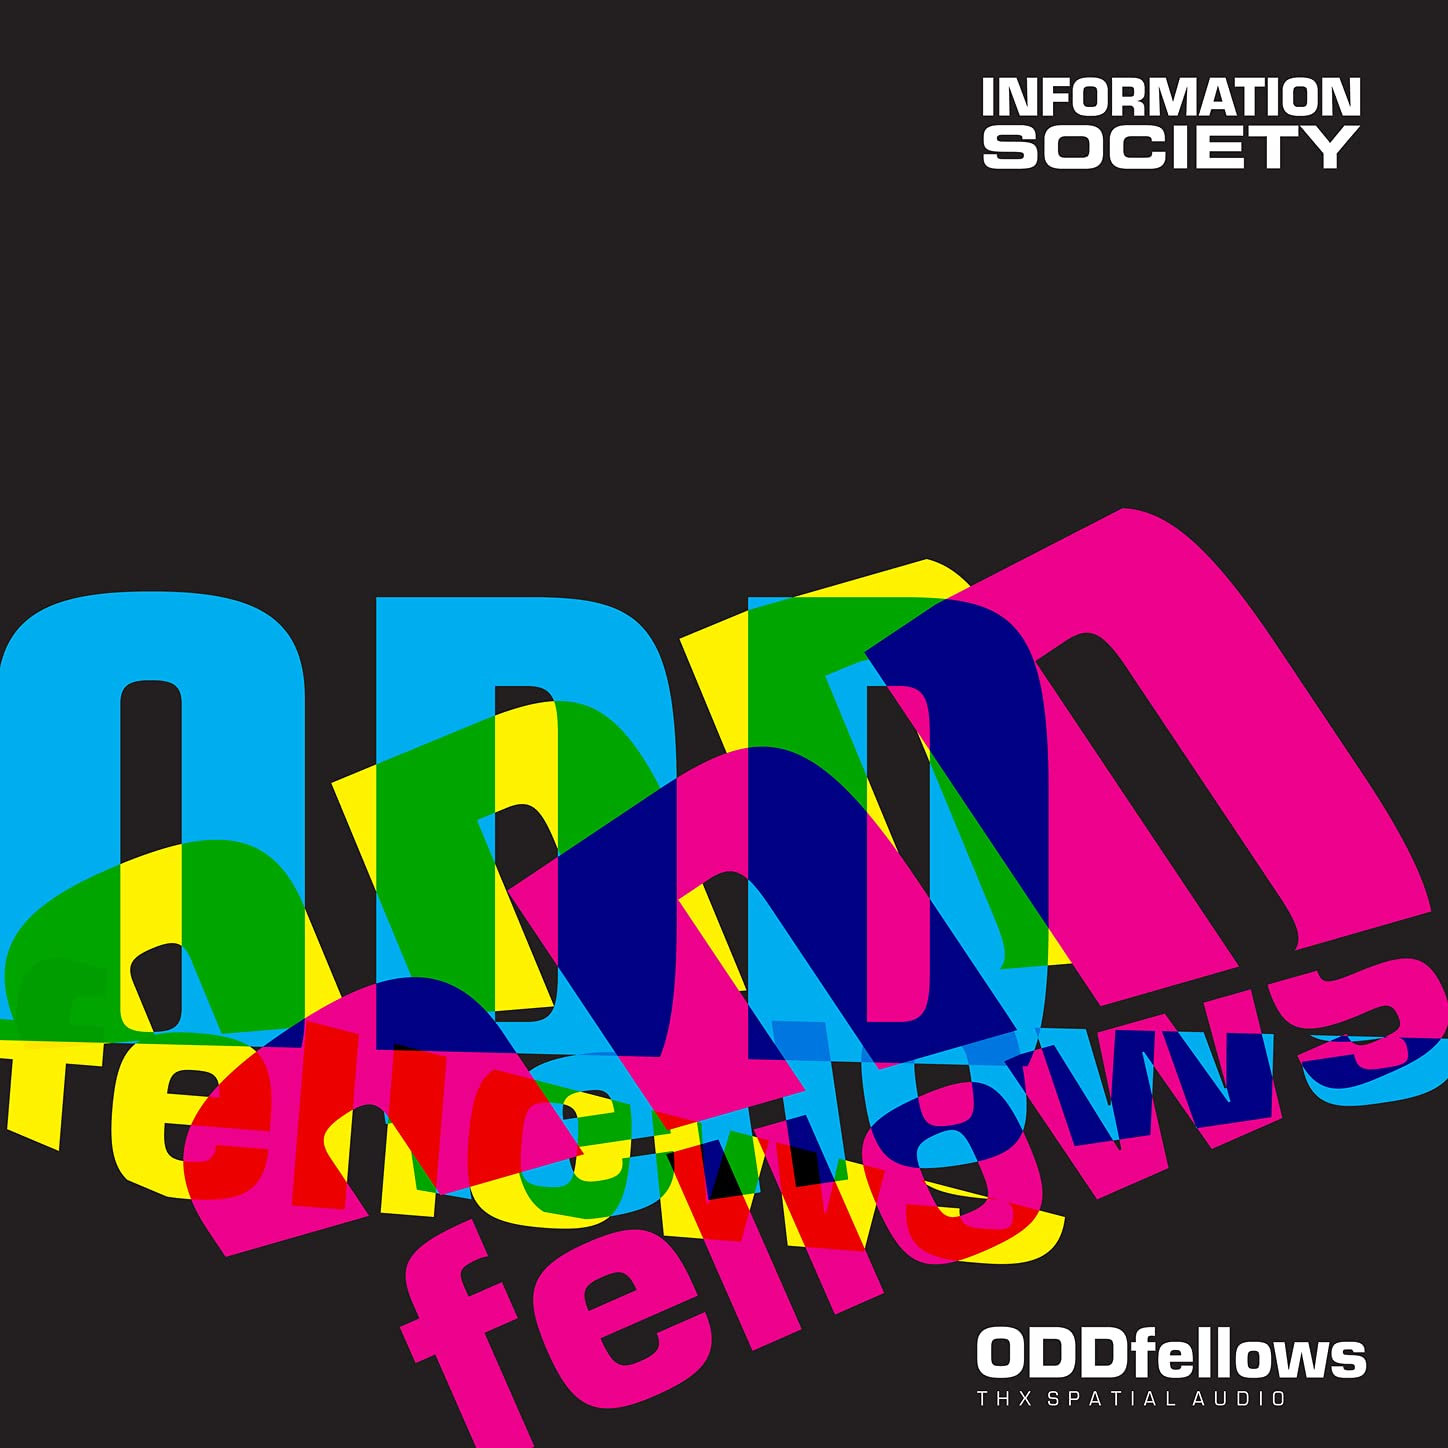 Information Society - ODDfellows (2021) [FLAC] Download